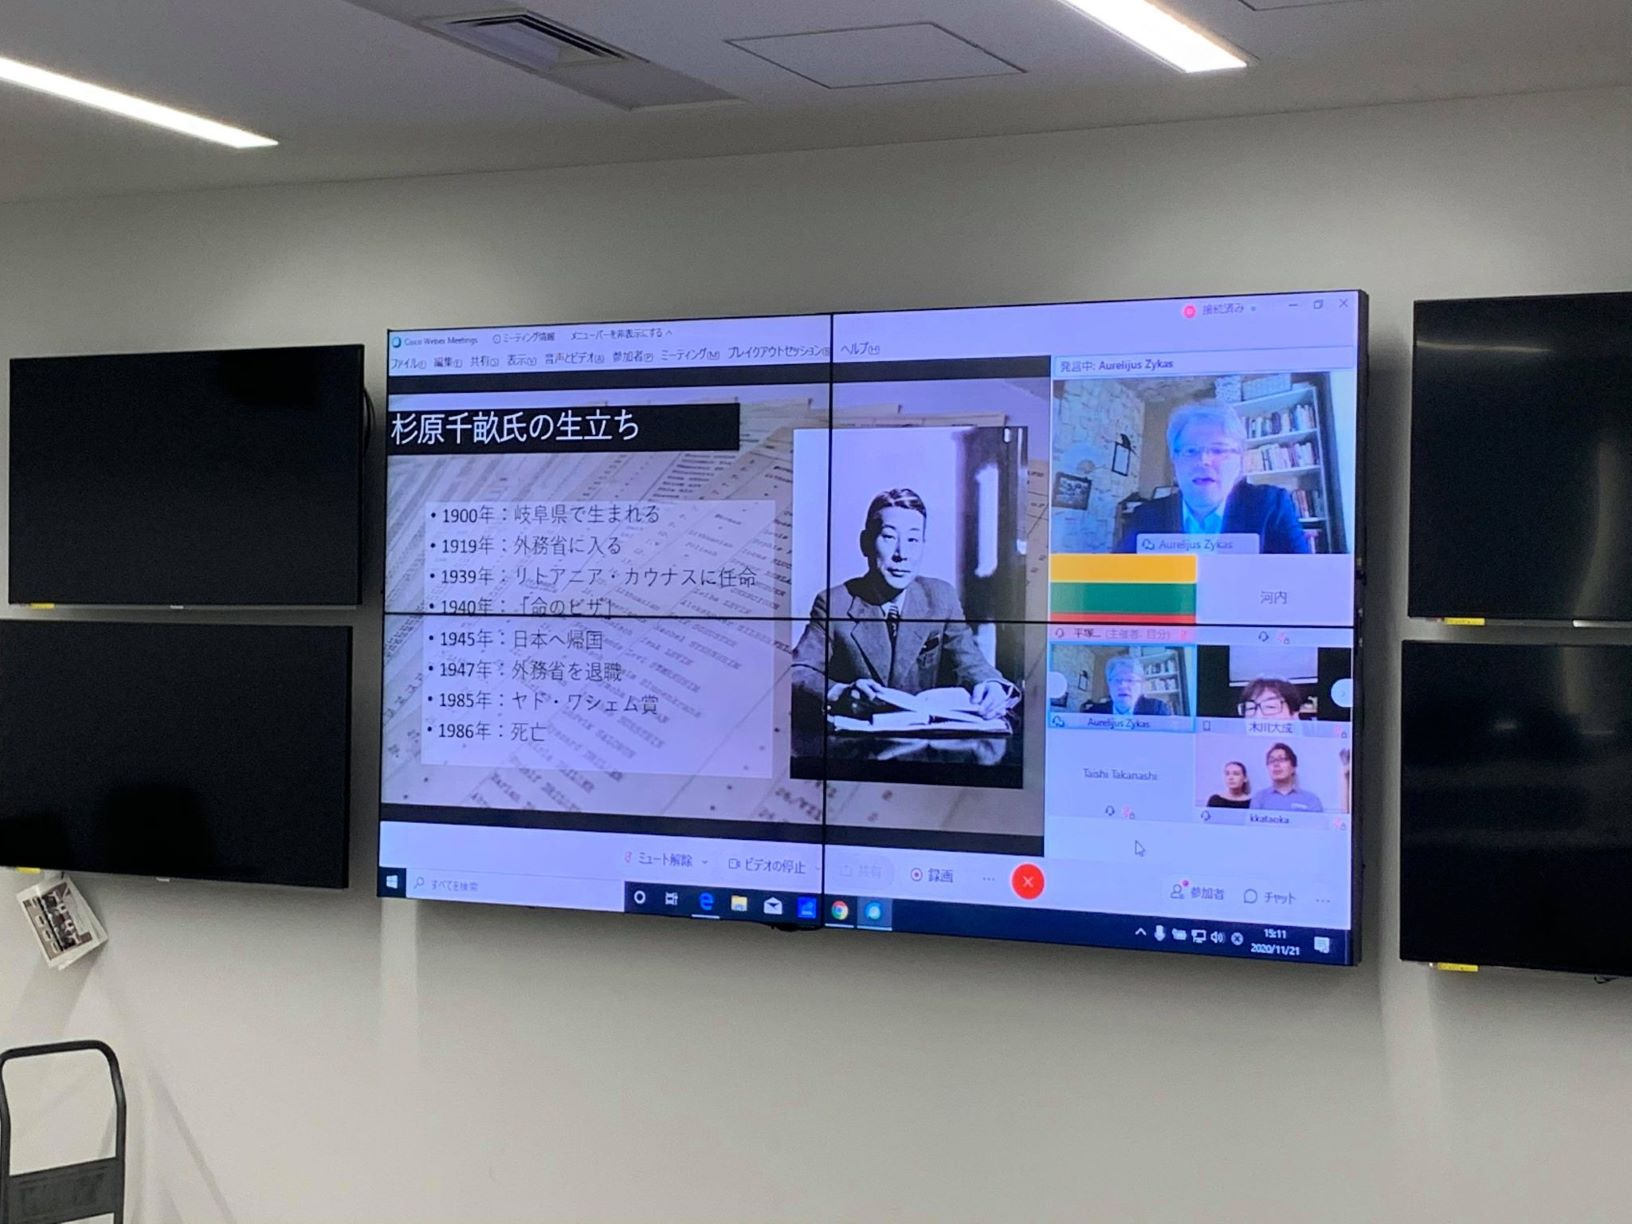 Online lecture about Ch. Sugihara for Hiratsuka City